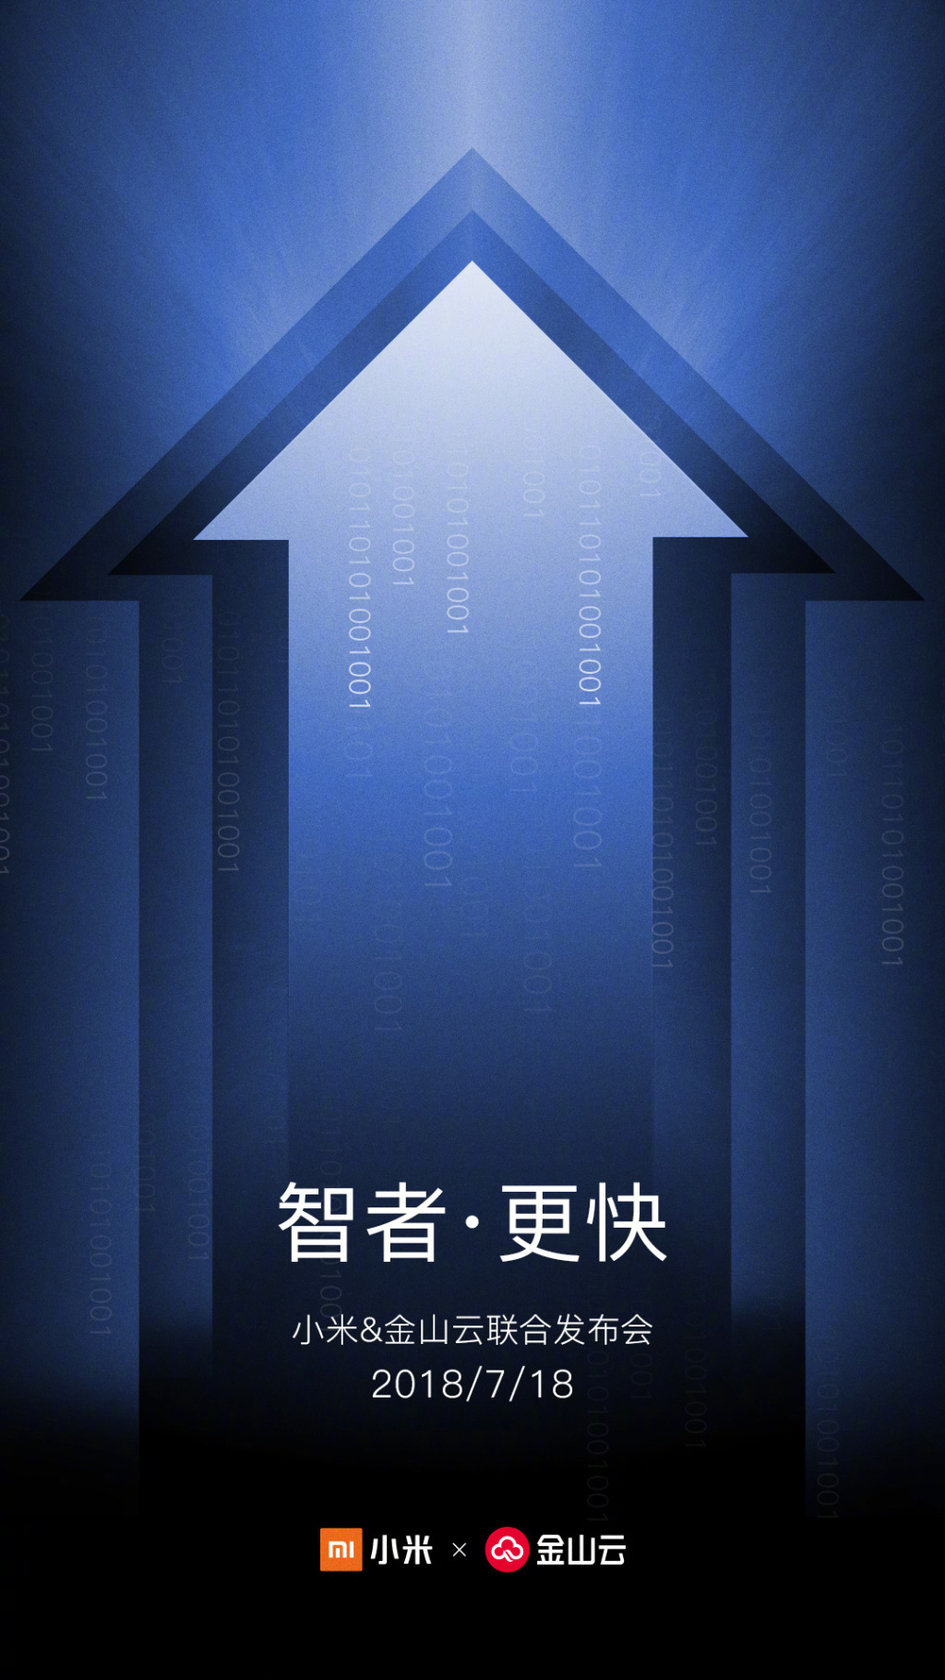 Xiaomi together with Jinshan Cloud will present a new router tomorrow